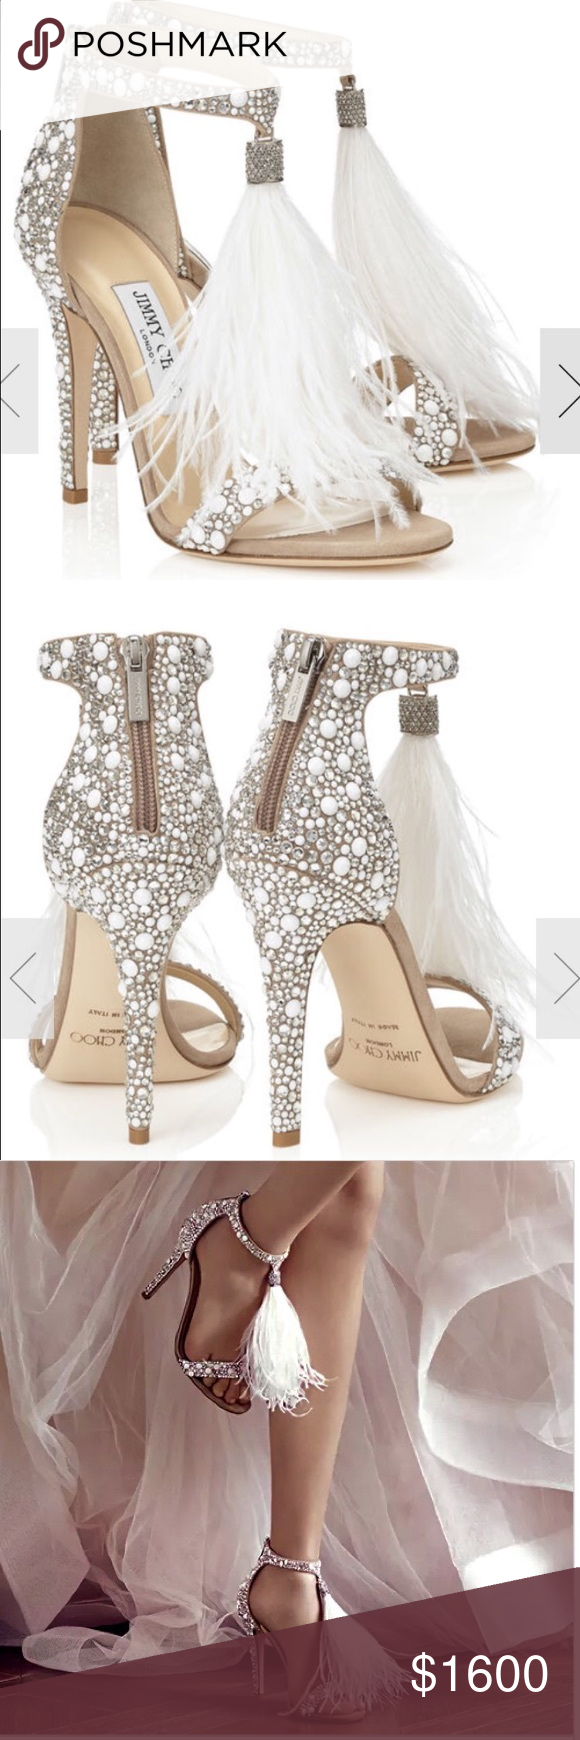 bd146d0980d Jimmy Choo Viola 110 White Suede and Hot Fix Crystal Embellished Sandals  with an Ostrich Feather